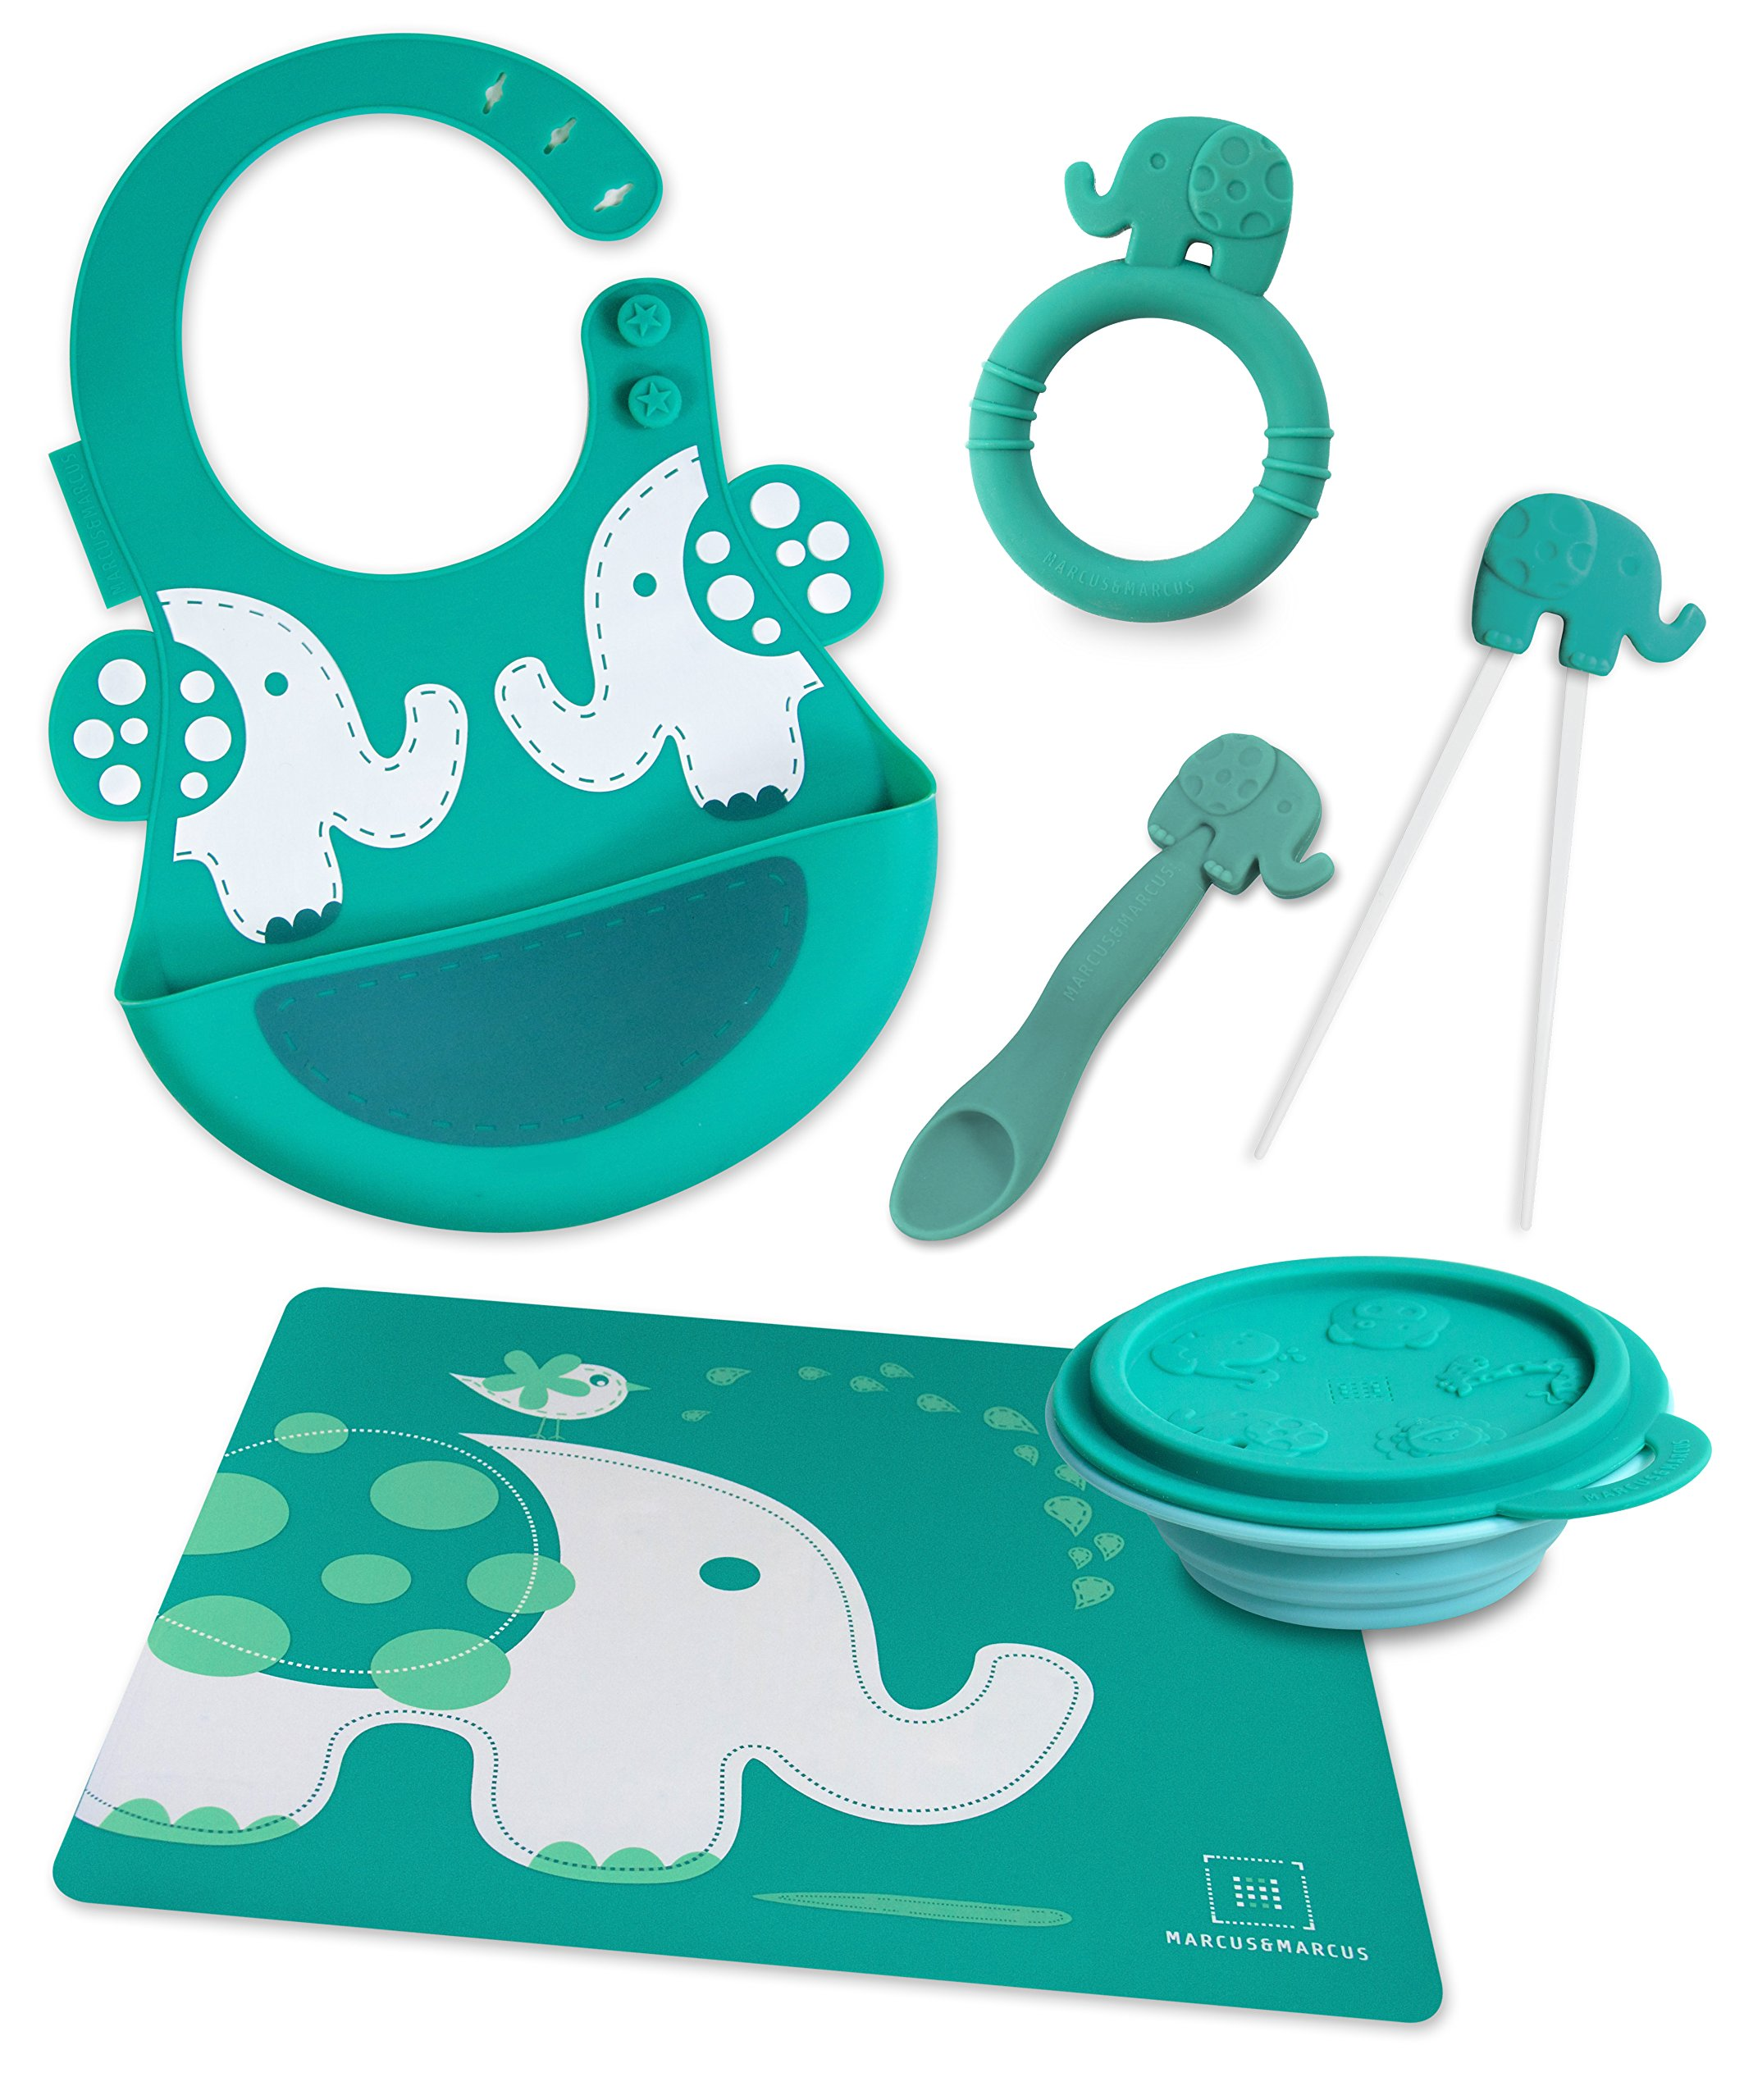 Marcus & Marcus OLLIE THE ELEPHANT Silicone Baby Feeding 6 Pack - Green by Marcus & Marcus (Image #1)